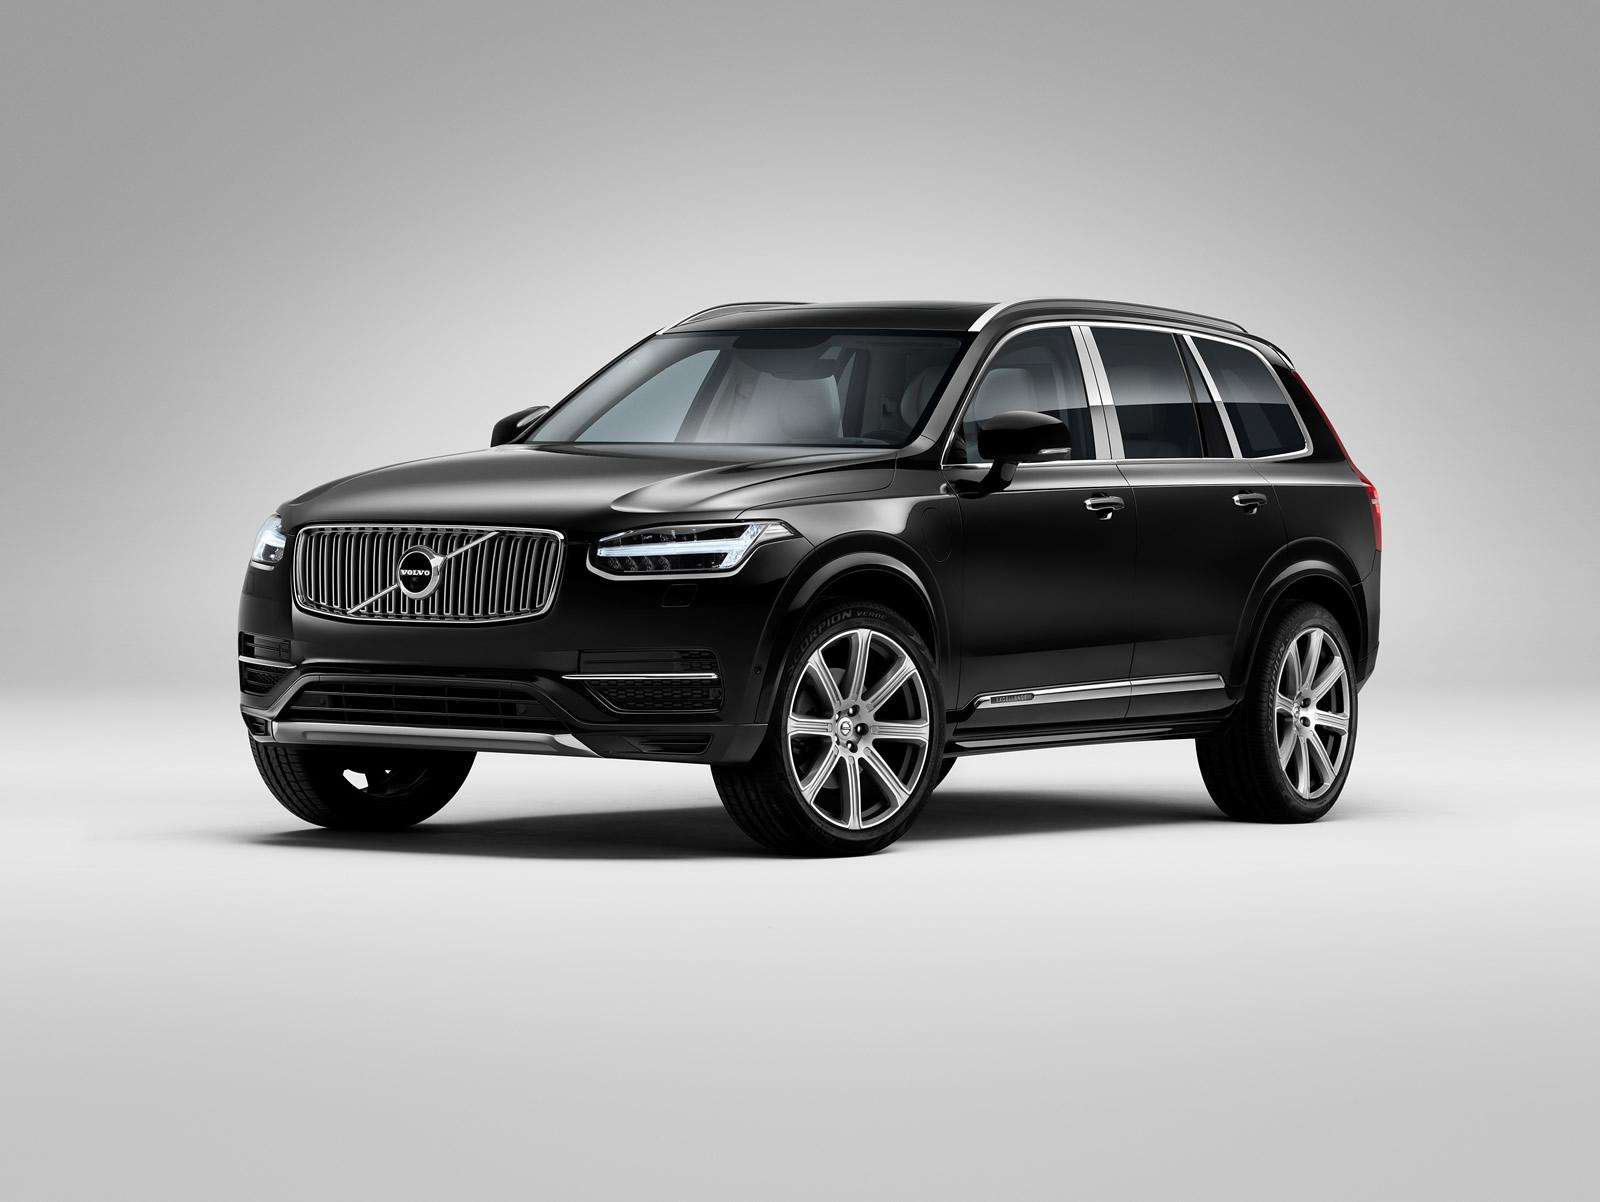 2016 Volvo XC90 Excellence 1 2016 Volvo XC90 Excellence Features and details